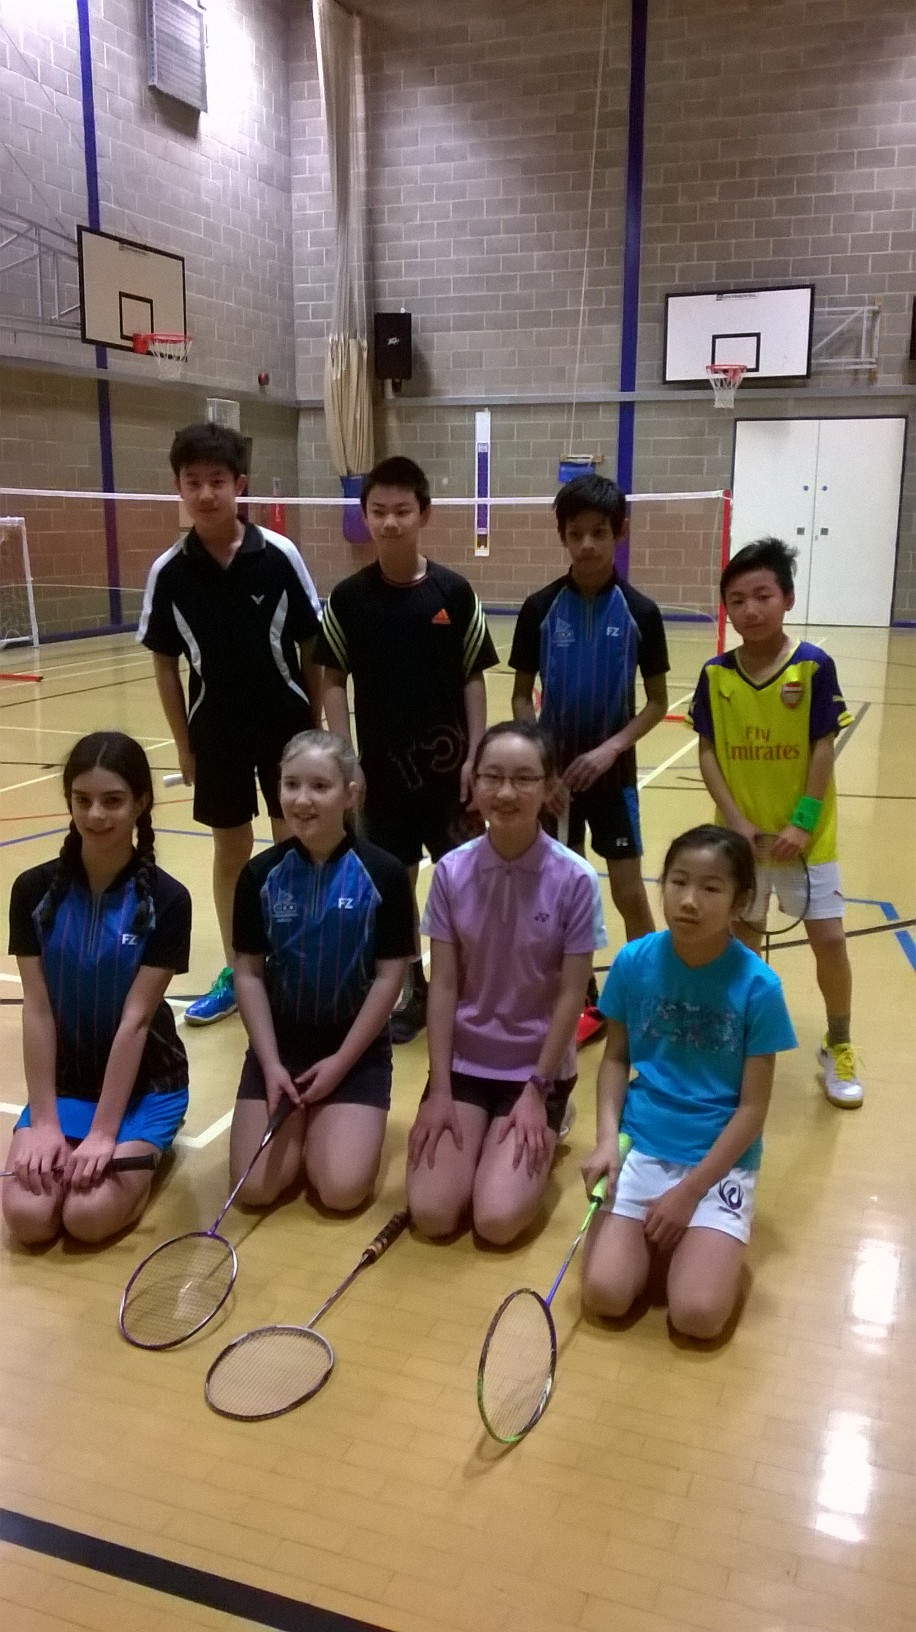 u13 friendly 31 1 2016.jpg